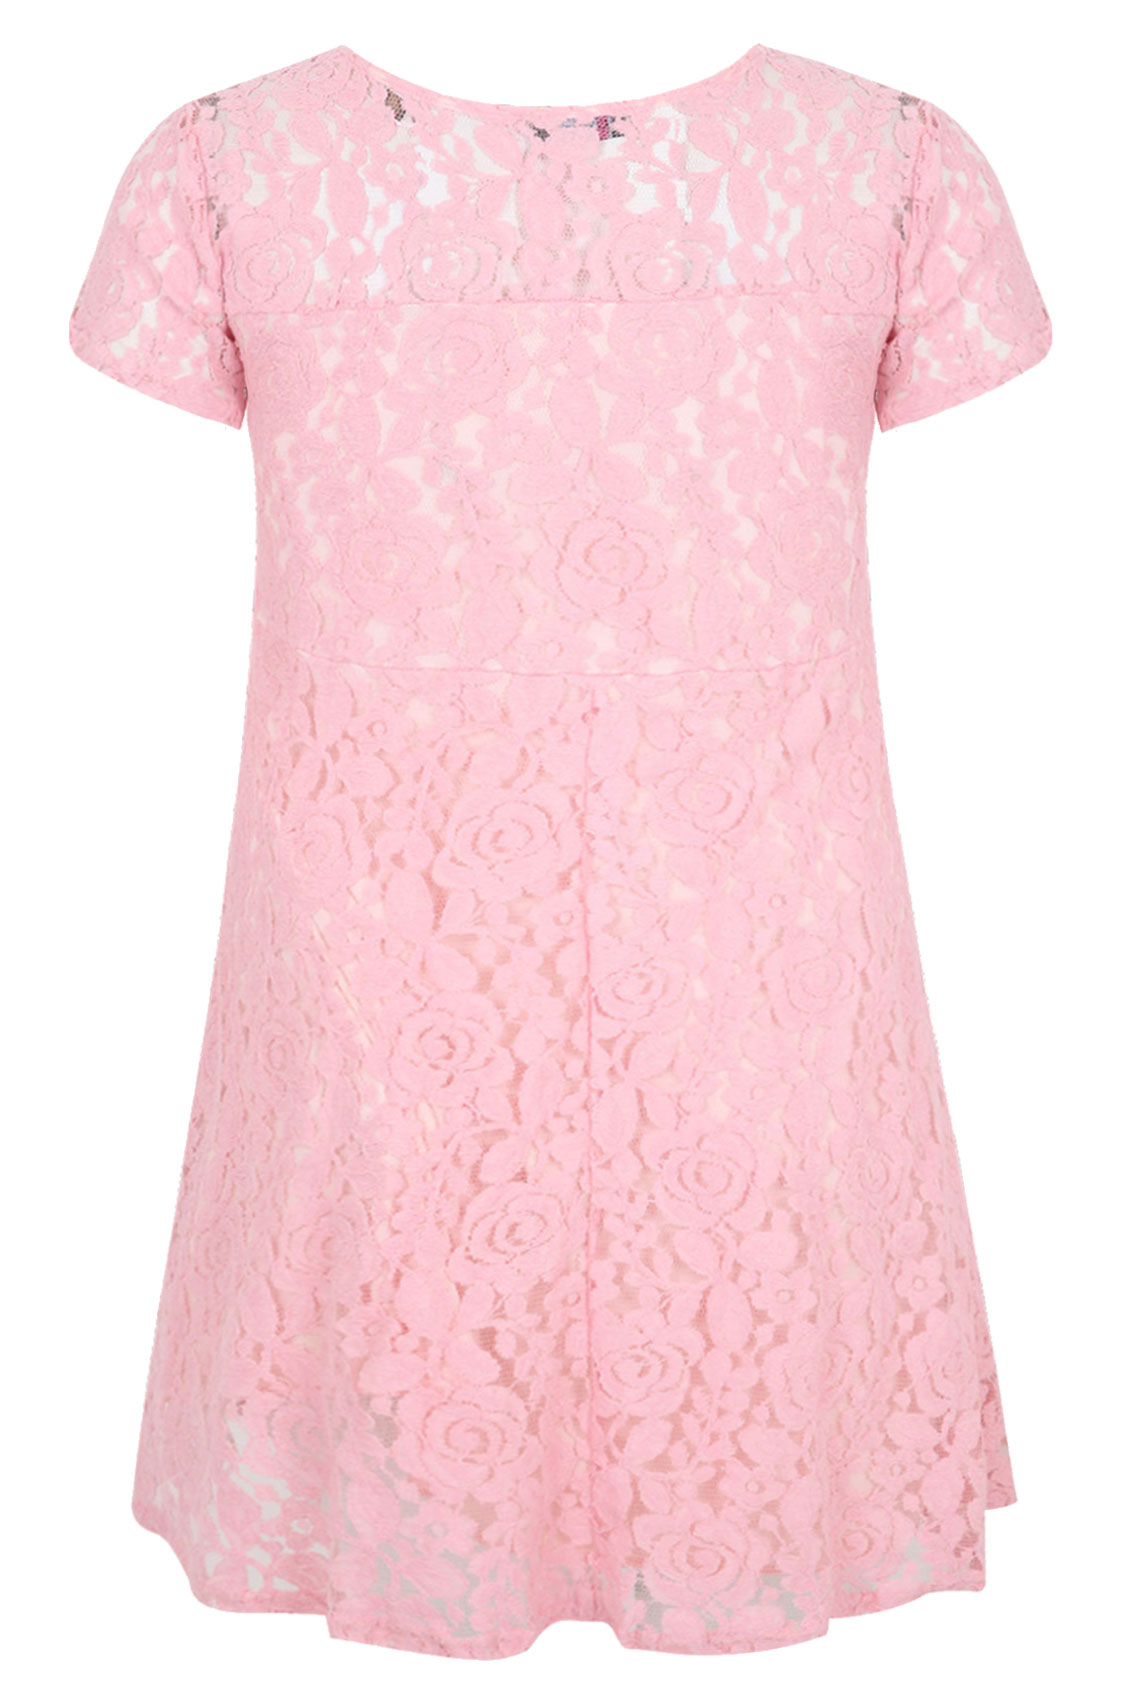 Pastel Pink Lace Skater Dress With Short Sleeves Plus Size